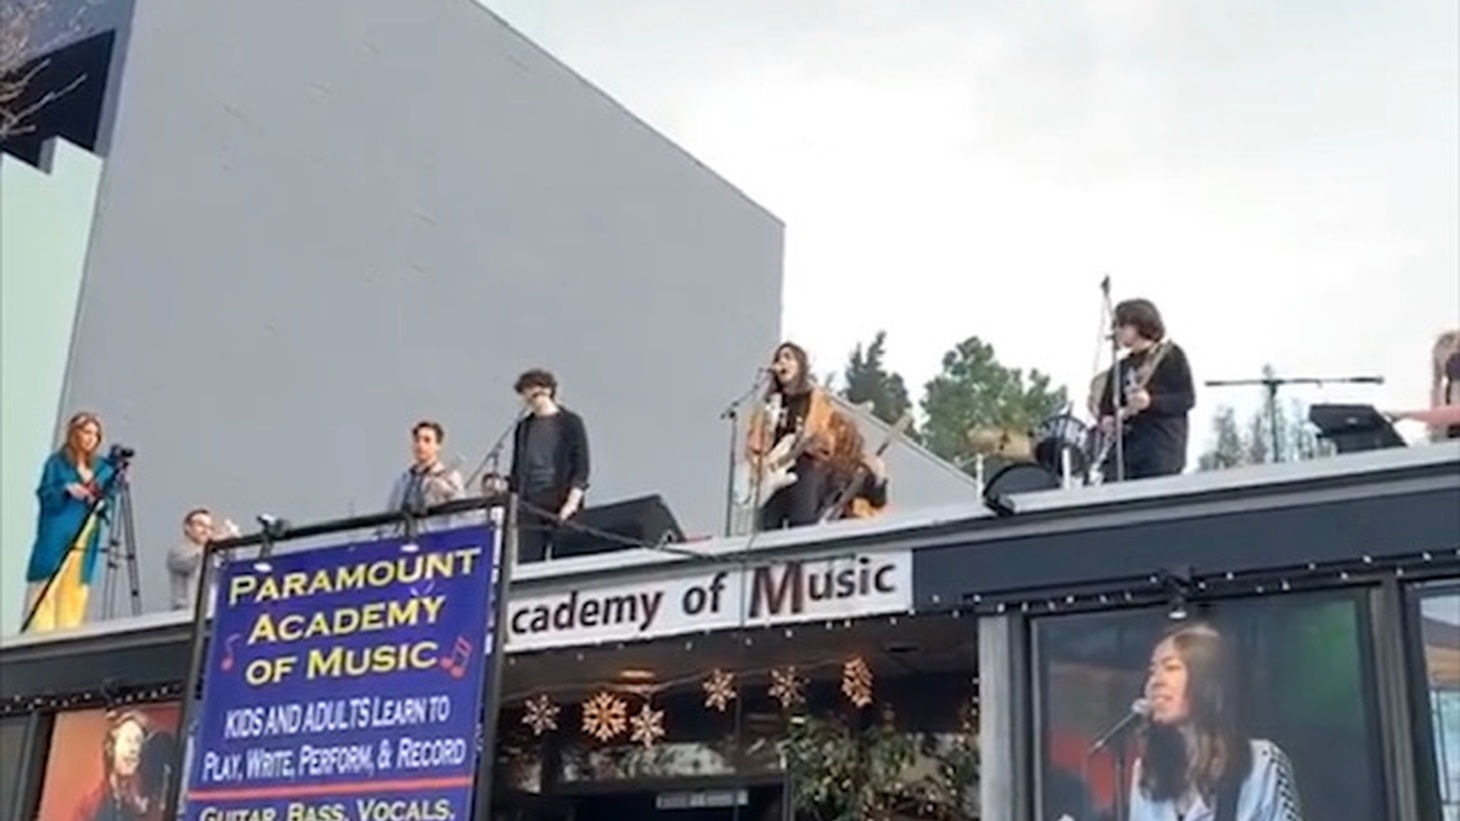 Students playing on the roof.